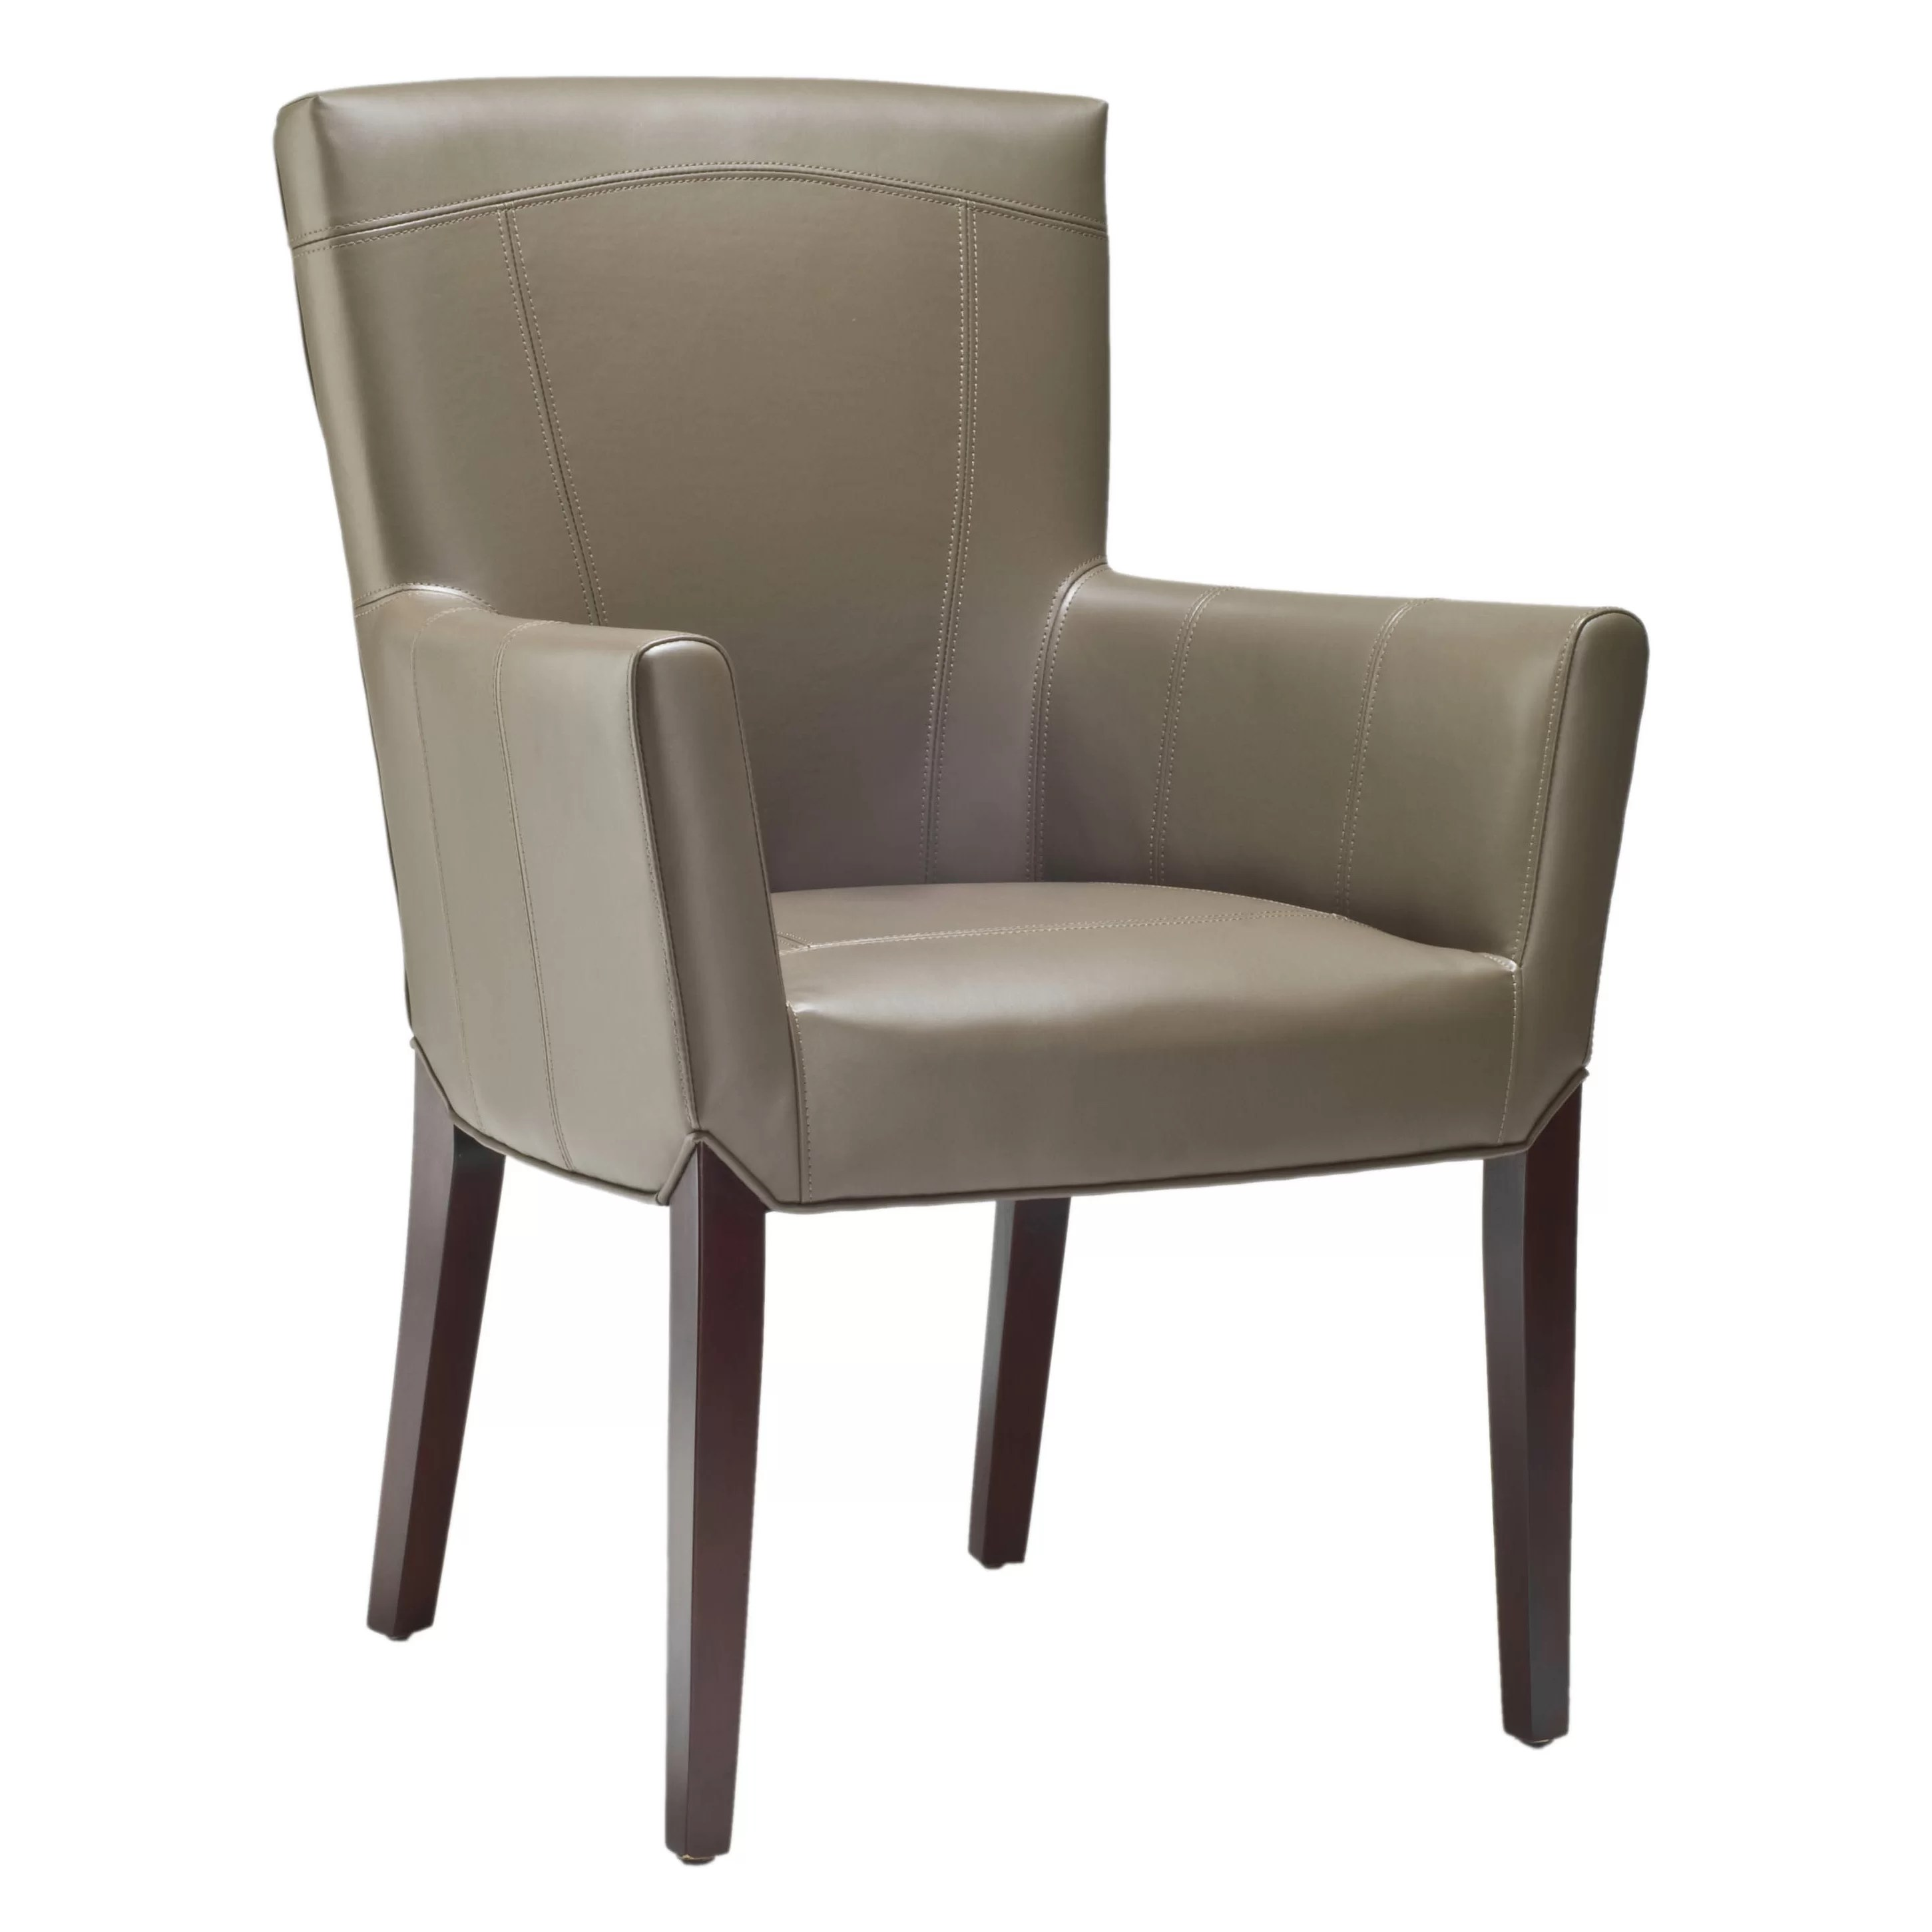 arm chair covers target double recliner chairs with cup holders safavieh ken and reviews wayfair